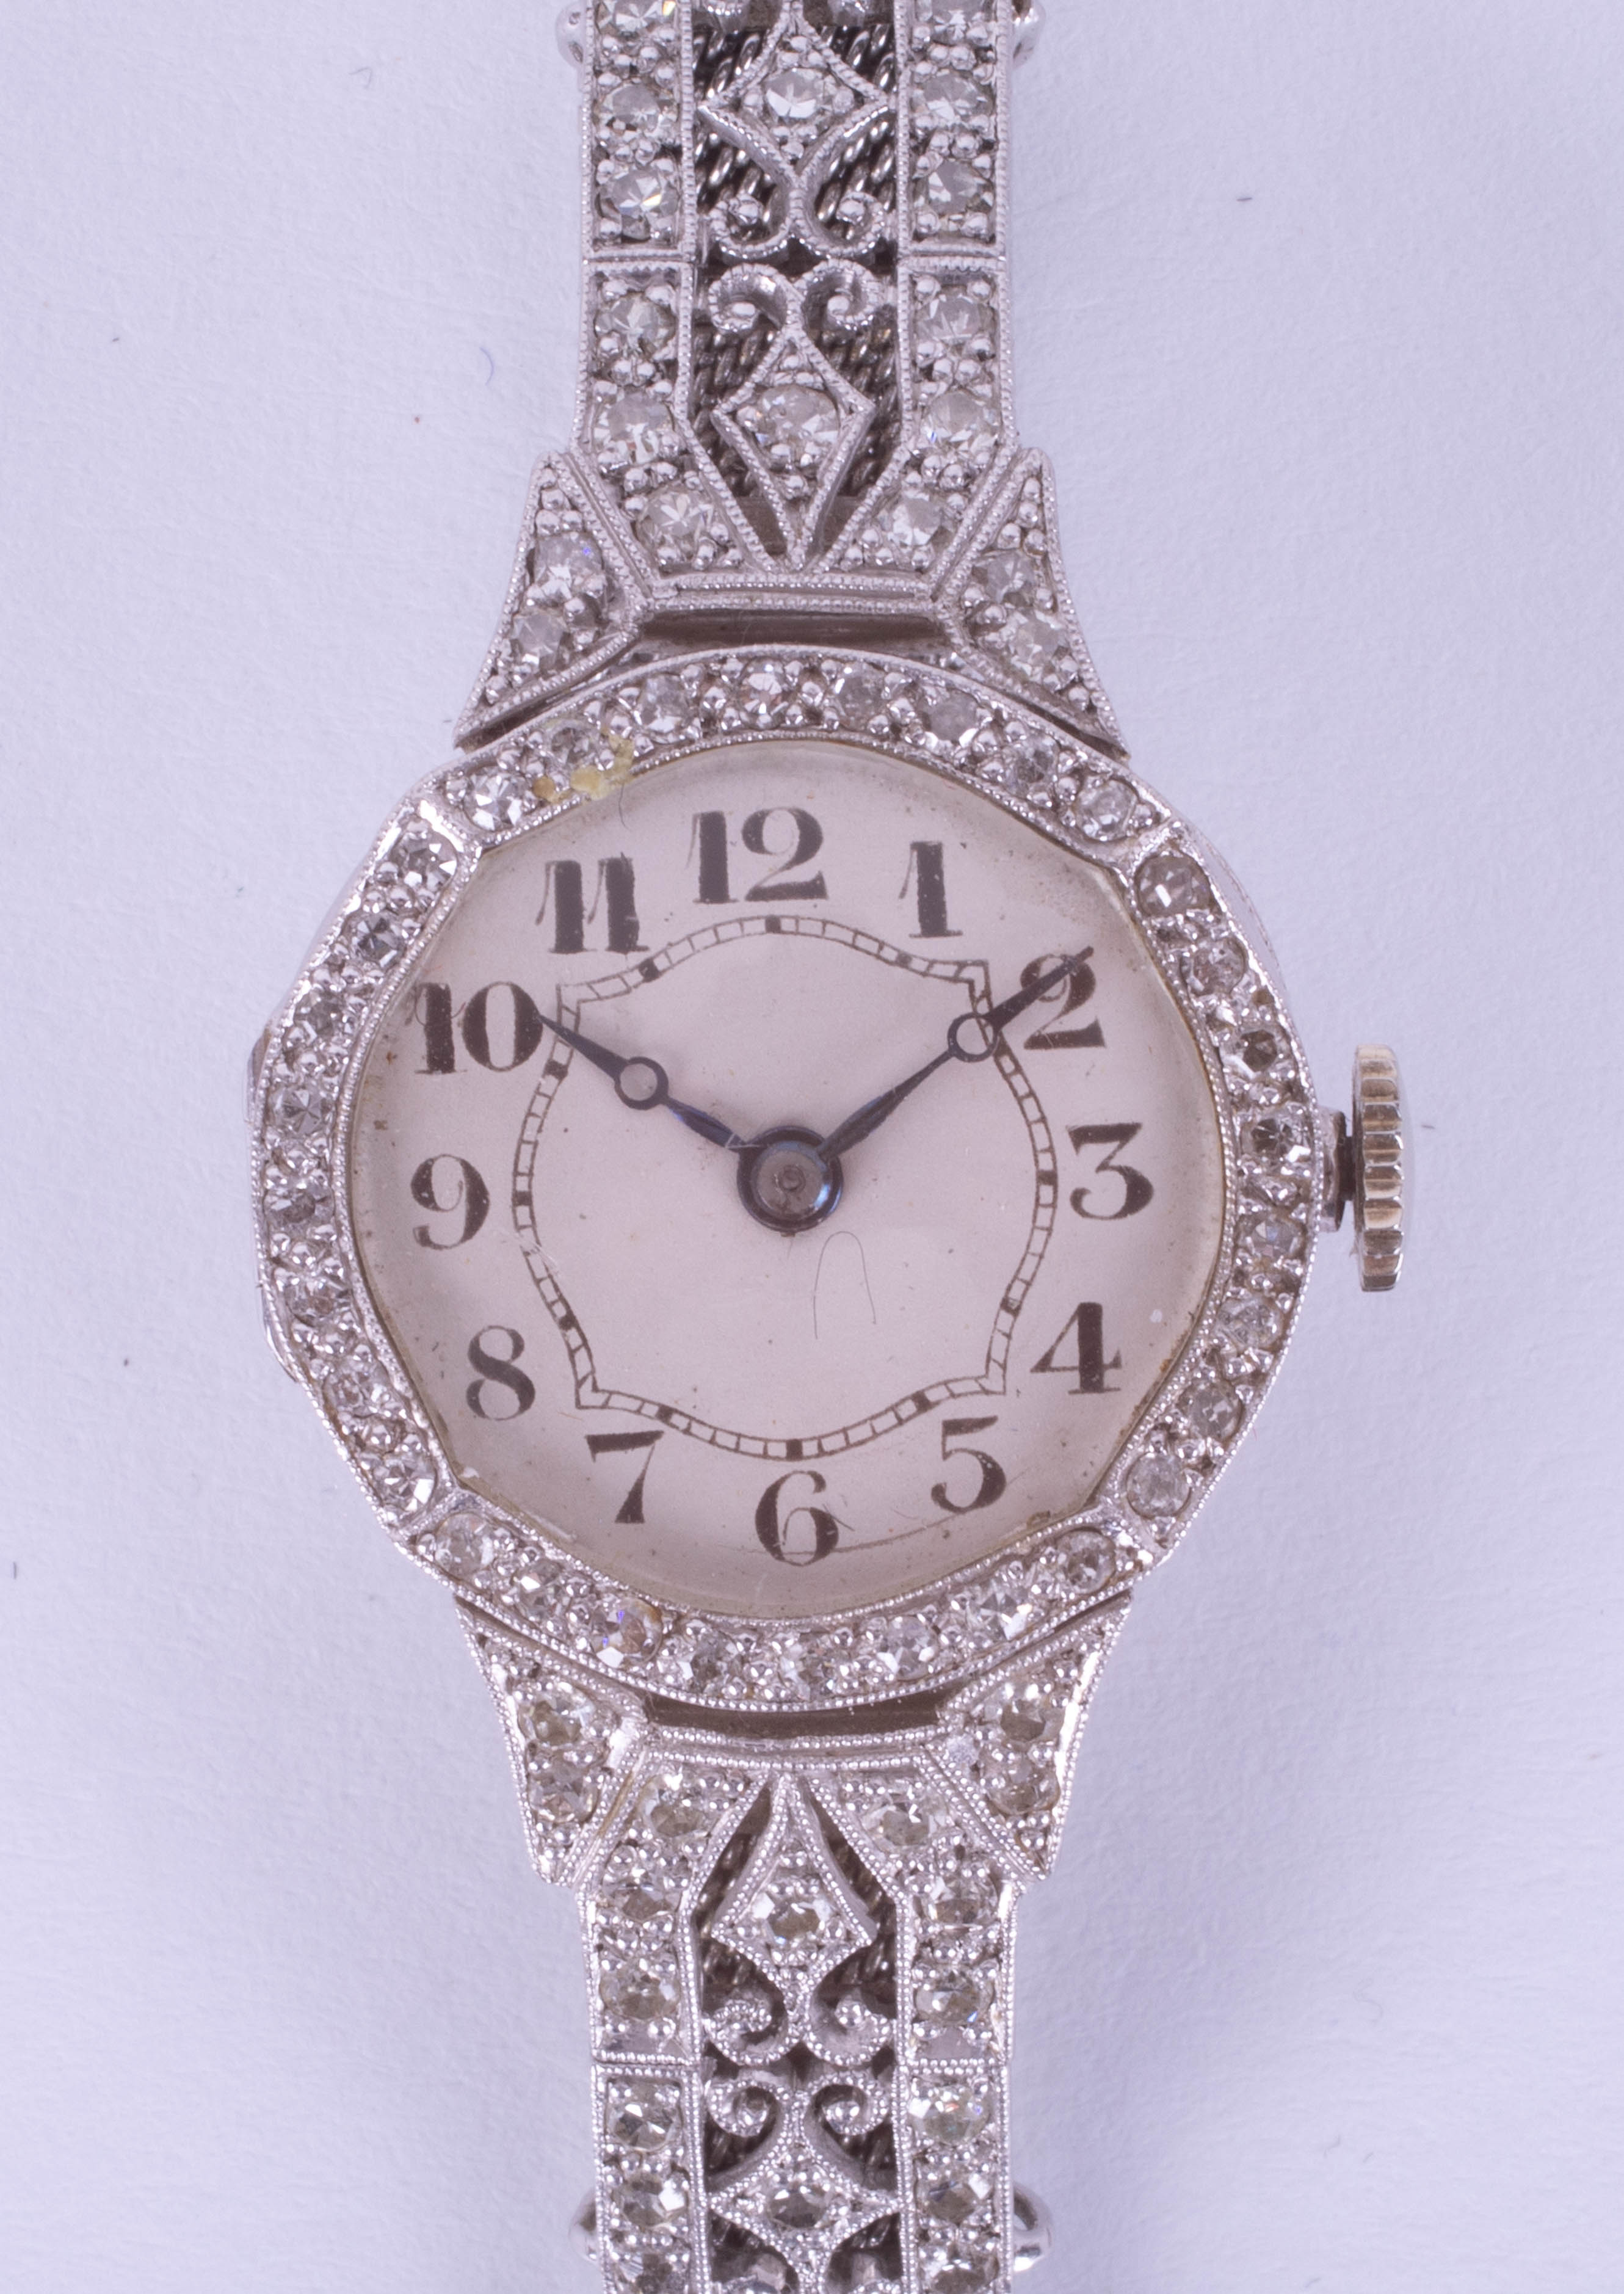 An 18ct diamond set cocktail watch with mesh bracelet, approximately 23.76g, the back case